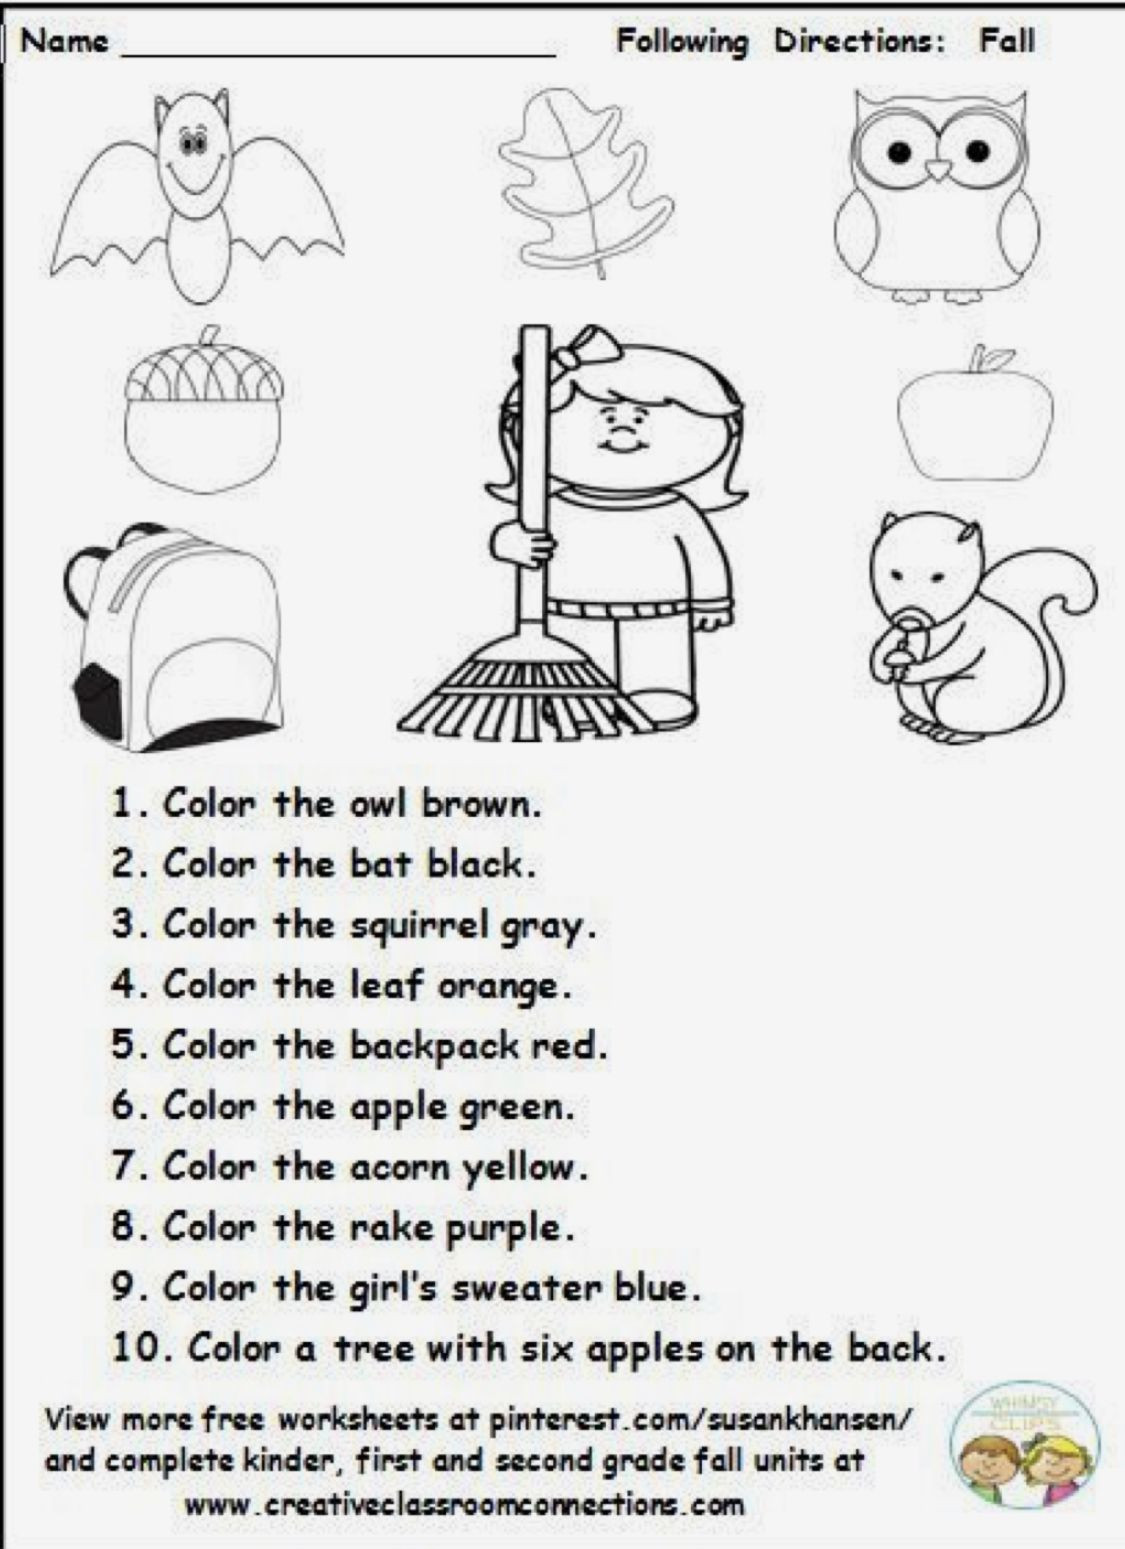 Free Following Directions Worksheets